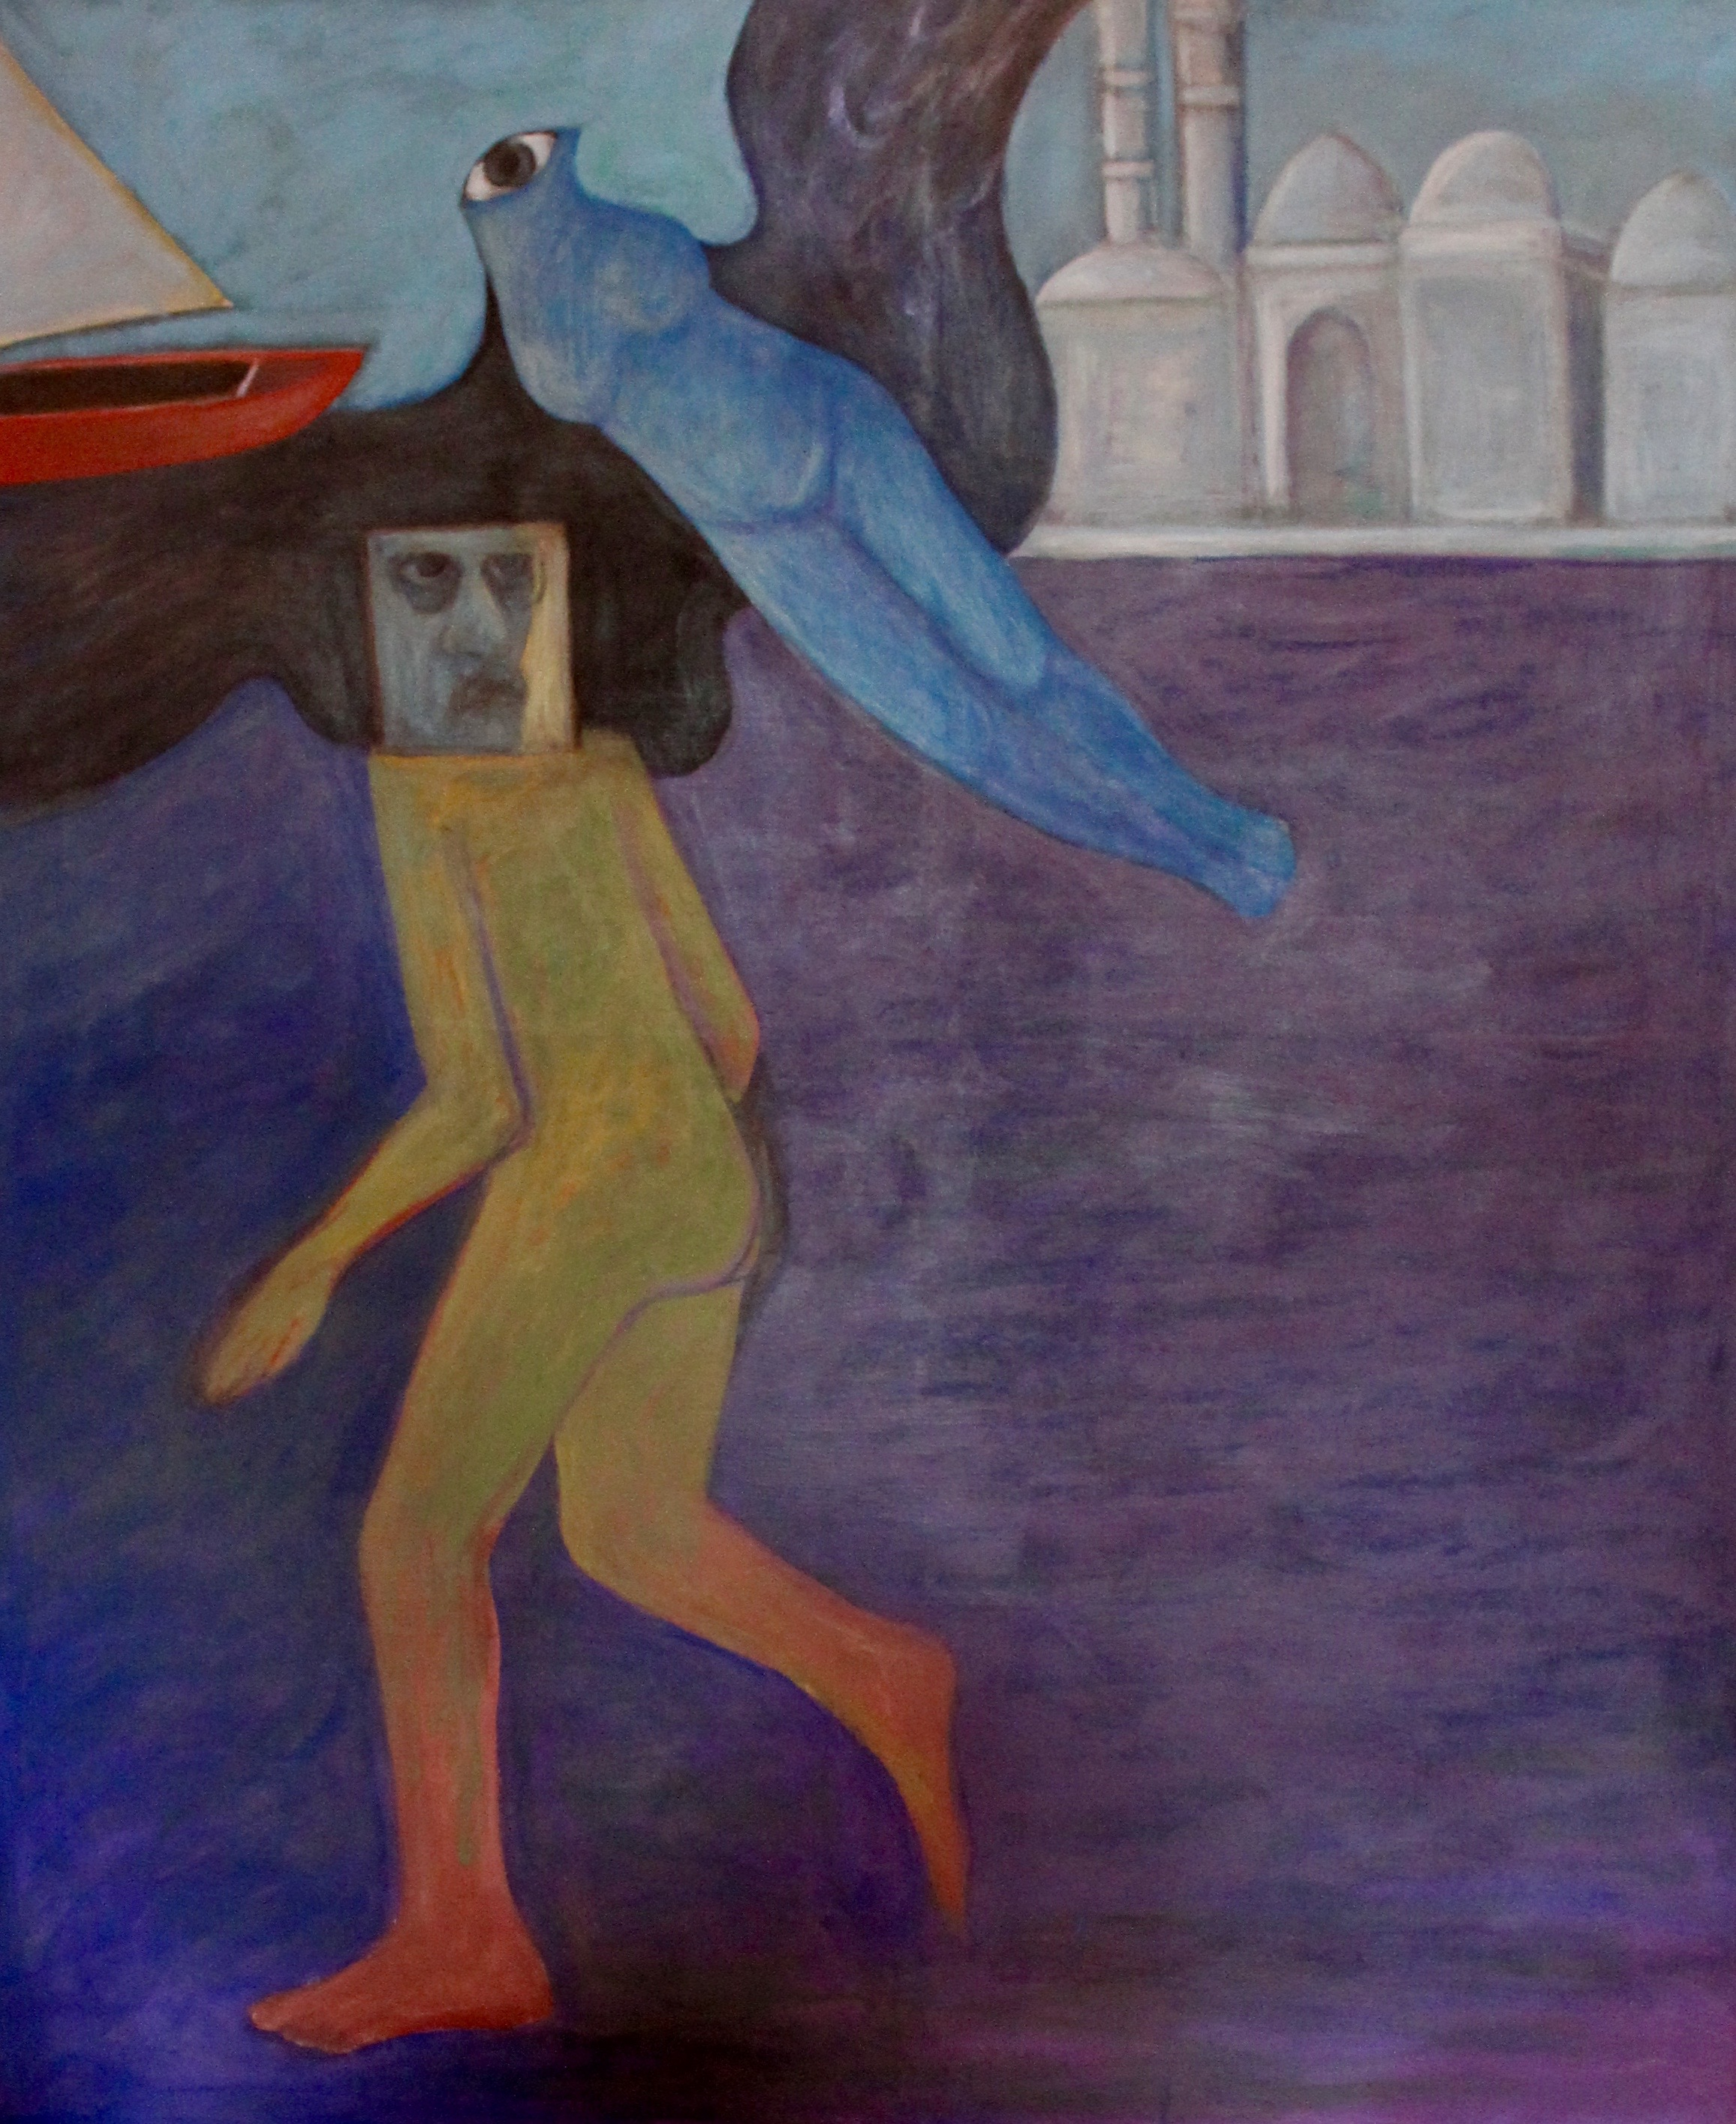 Ahmed Morsi, Artist in Alexandria, 1989, image courtesy of the artist and Gypsum Gallery.